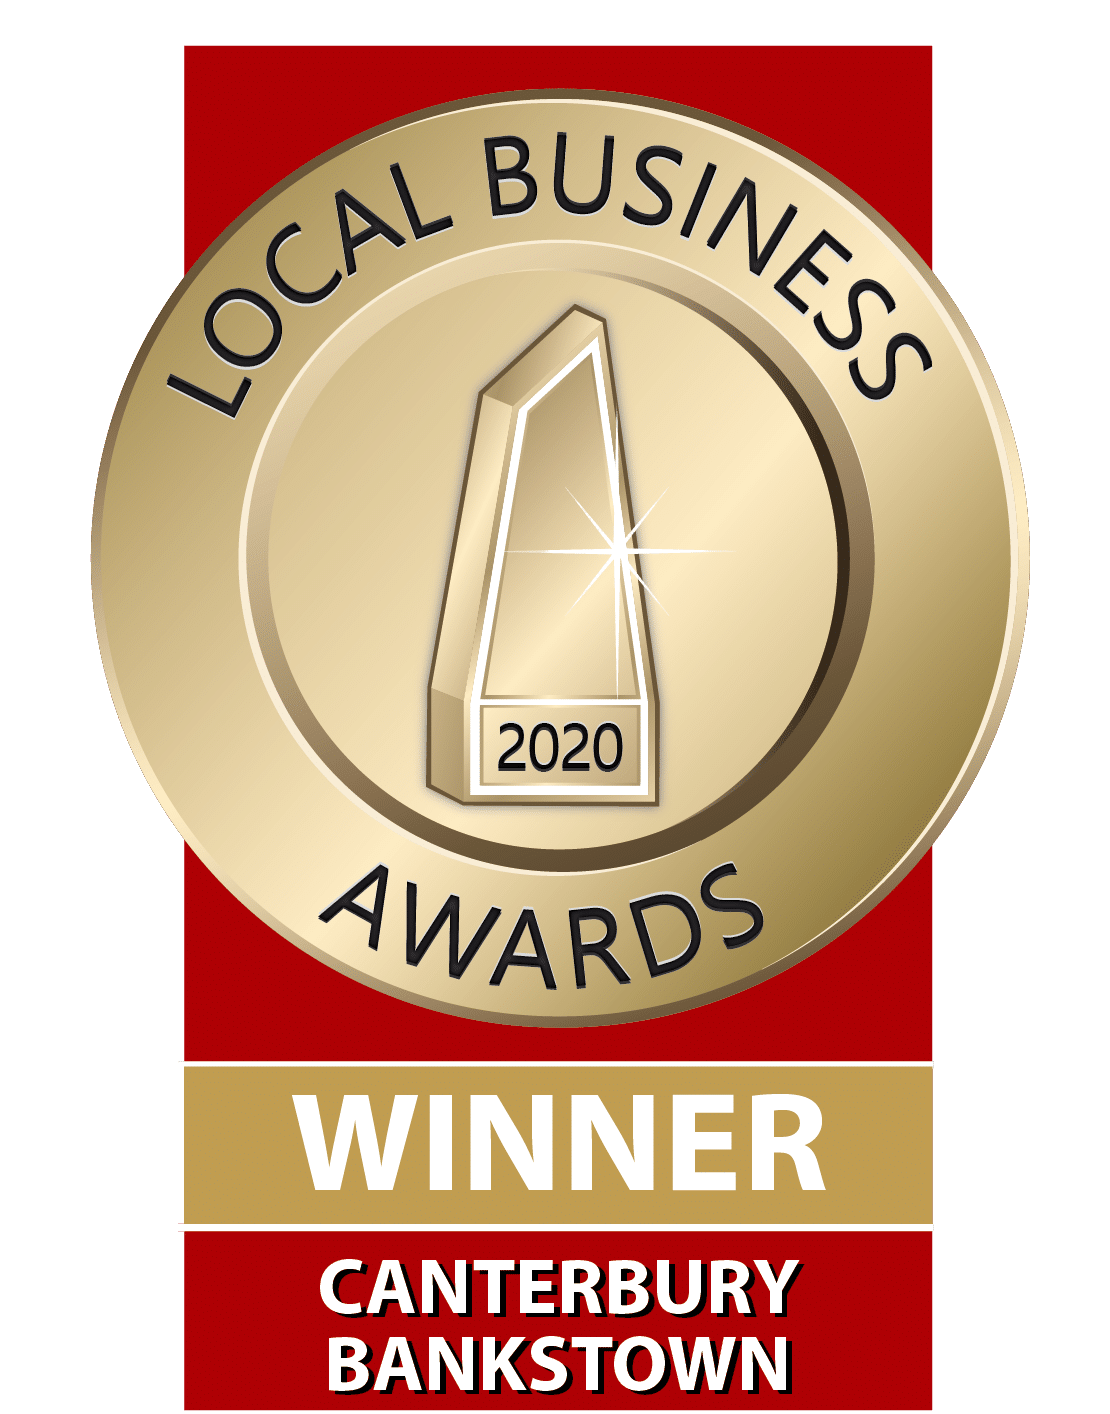 2020 CANTBANK WINNER LBA - Mortgage Navigators